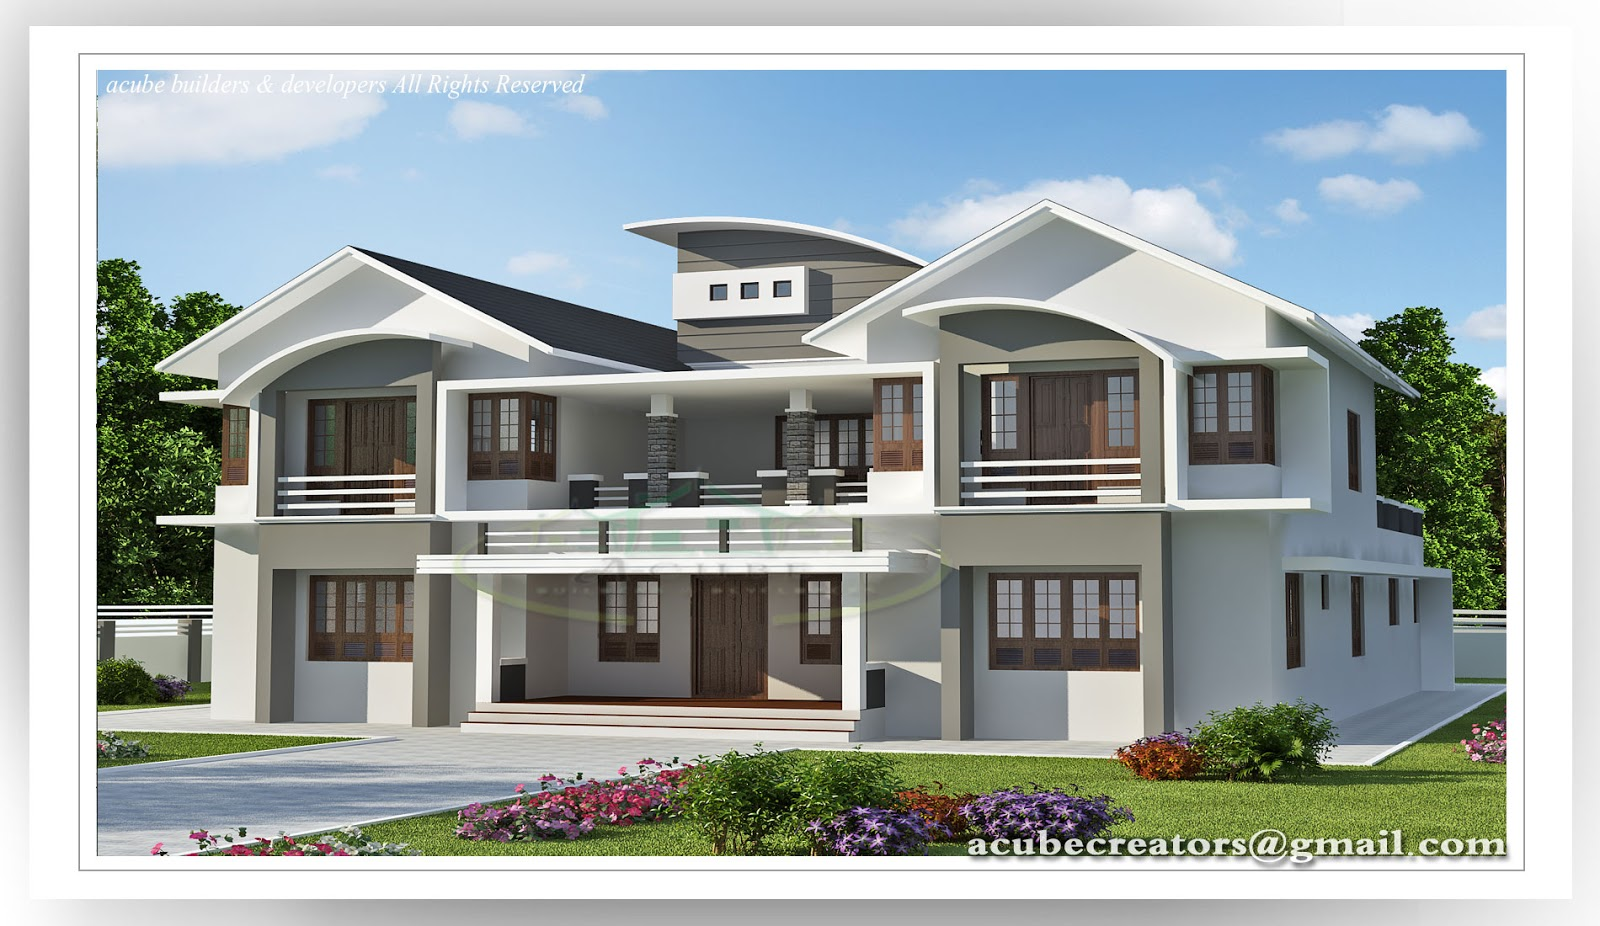 6 bedroom luxury villa design 5091 plan 149 6 bedroom house designs